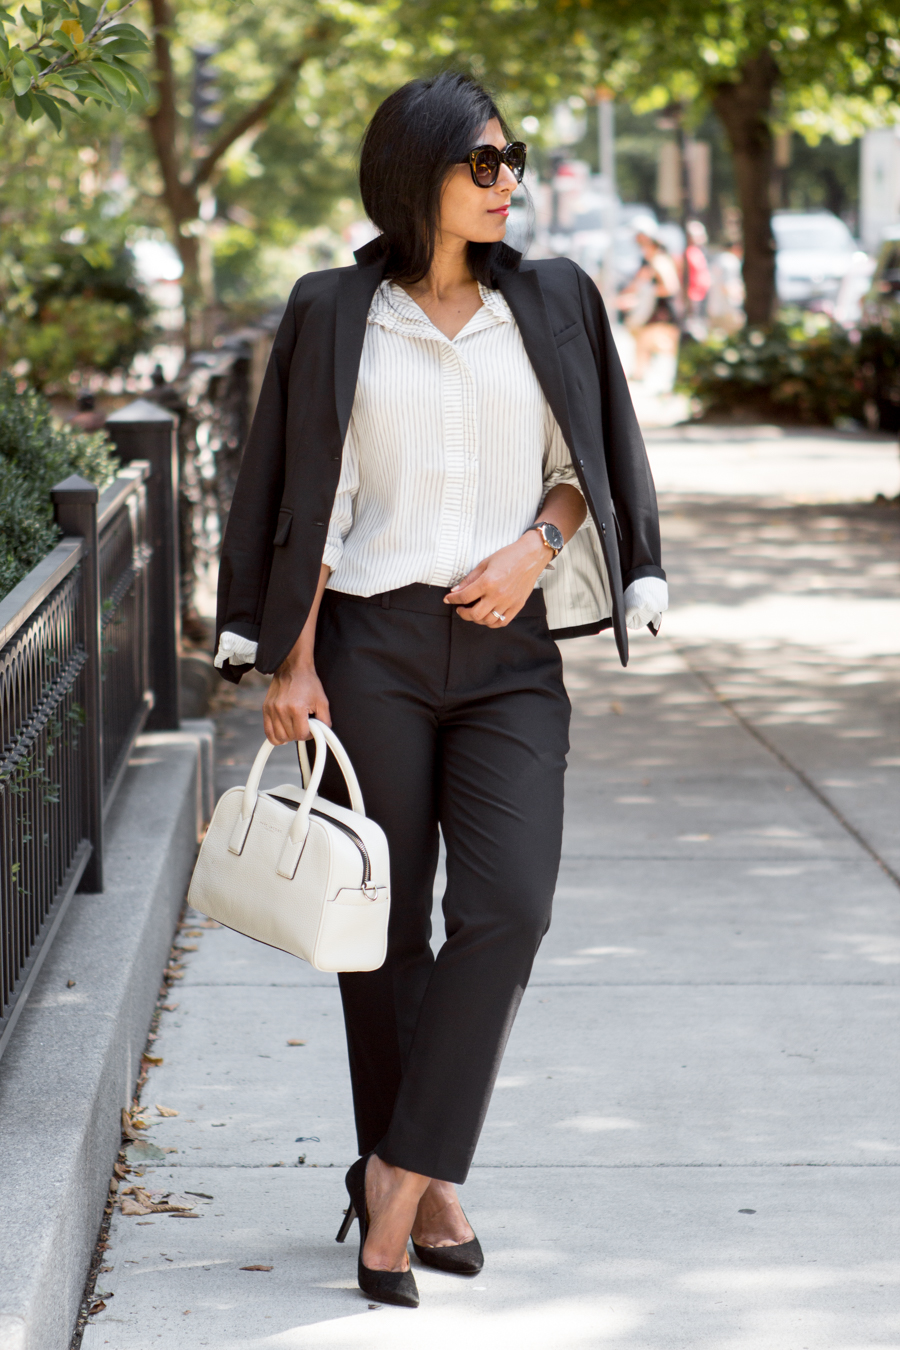 banana republic, work style, petite fashion, versatile, lean wardrobe, classics, BR classics, itsbanana, work life, working woman, professional wardrobe, office style, work style, work chic, corporate fashion, 9 to 5, personal style, elegant, style blogger, black suit, blazer, cropped pants, work outfit, formal business wear